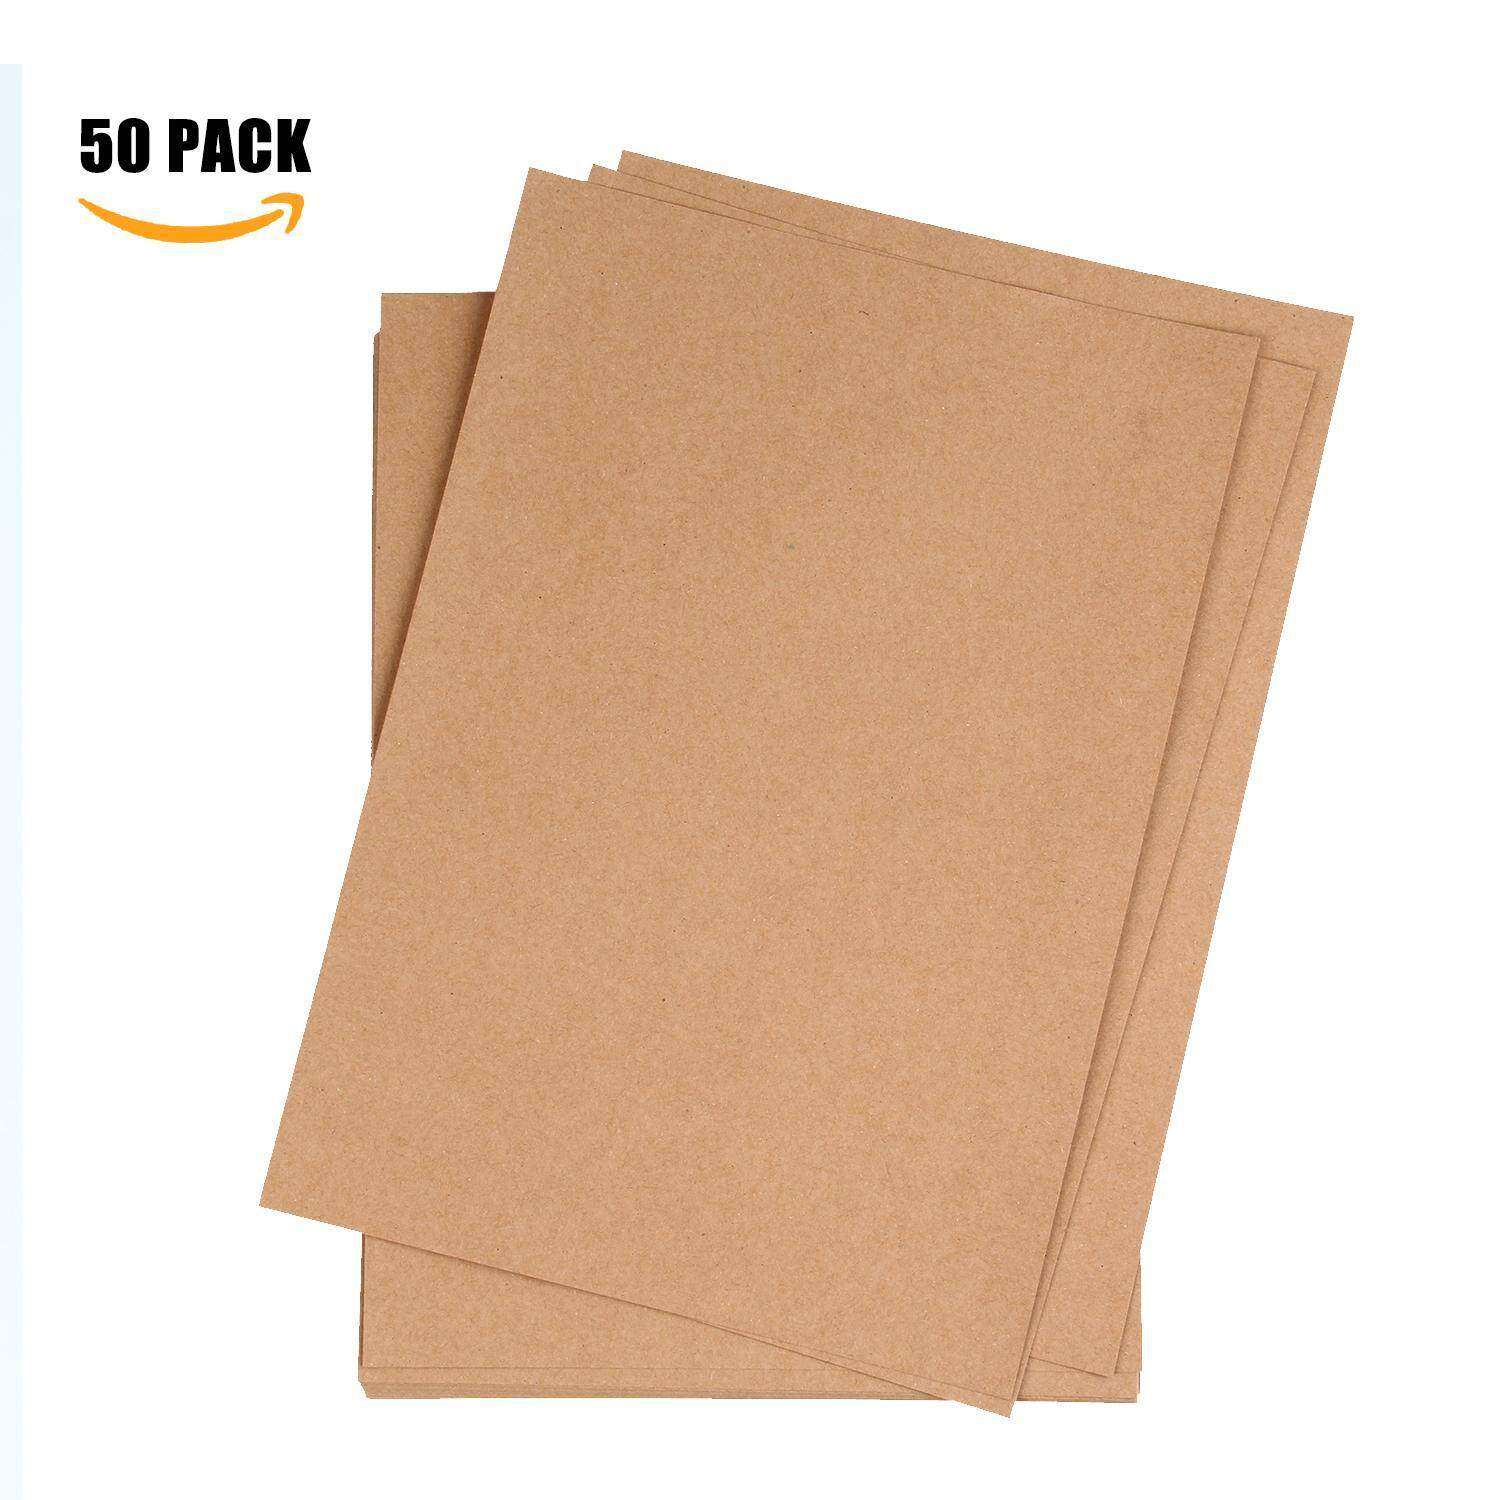 leegoal Kraft Paper, Pack Of 50 Natural Packing Wrapping Kraft Paper - 8.26x11.69inch - intl